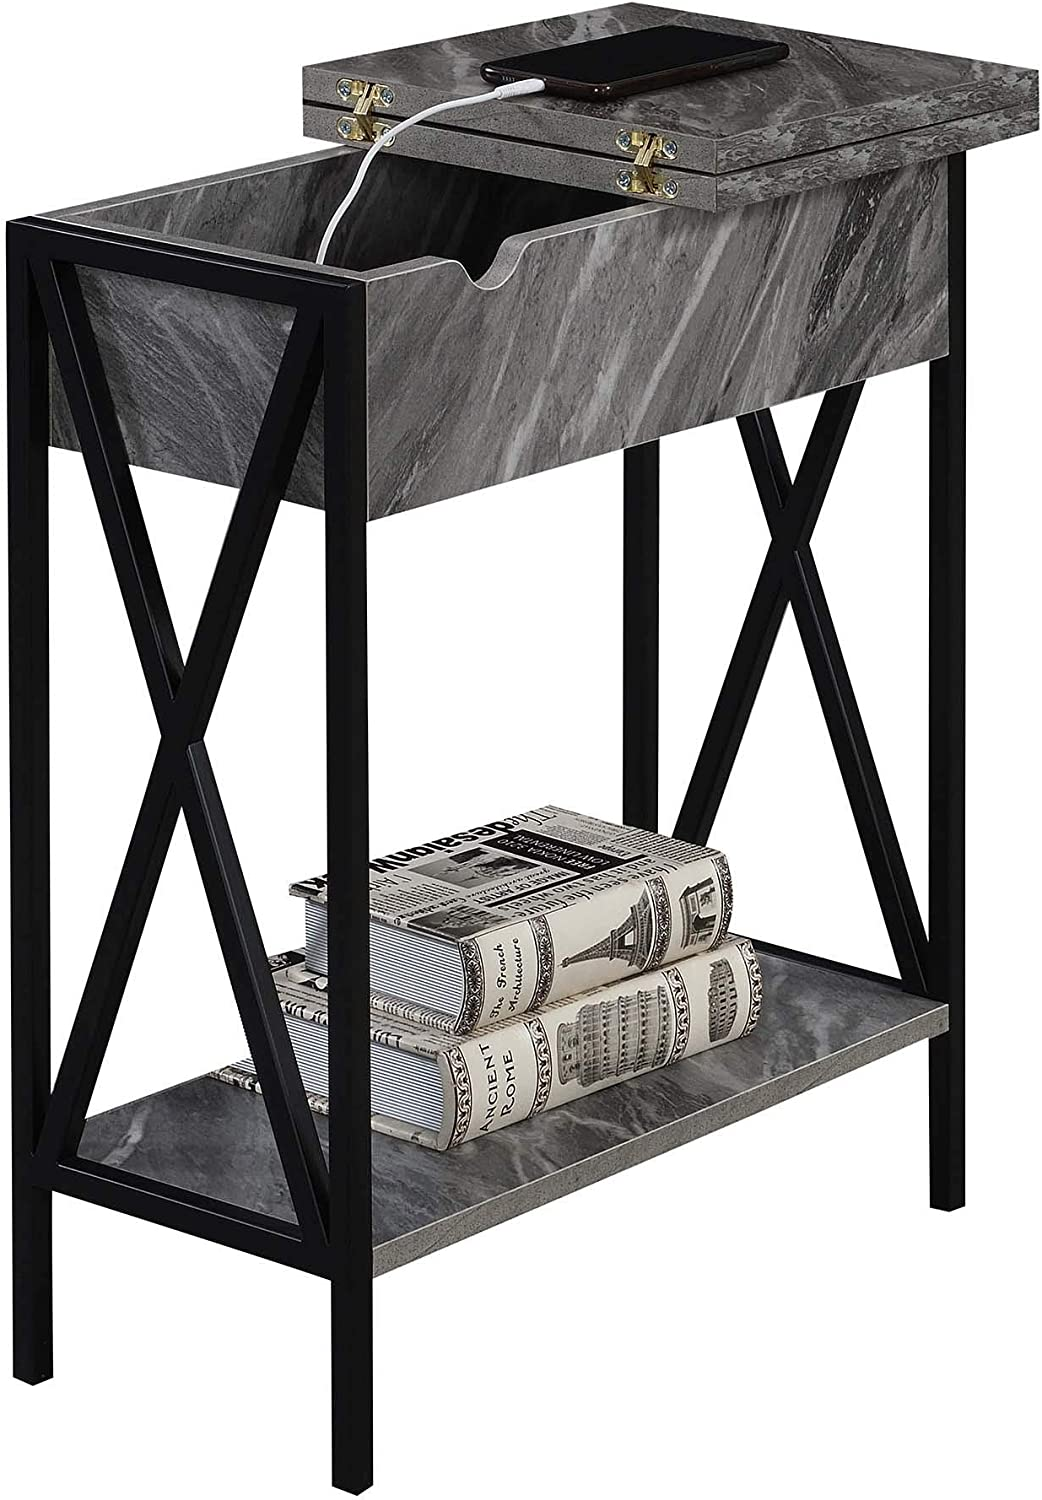 Convenience Concepts Tucson Flip Top End Table with Charging Station, Weathered Gray: Furniture & Decor